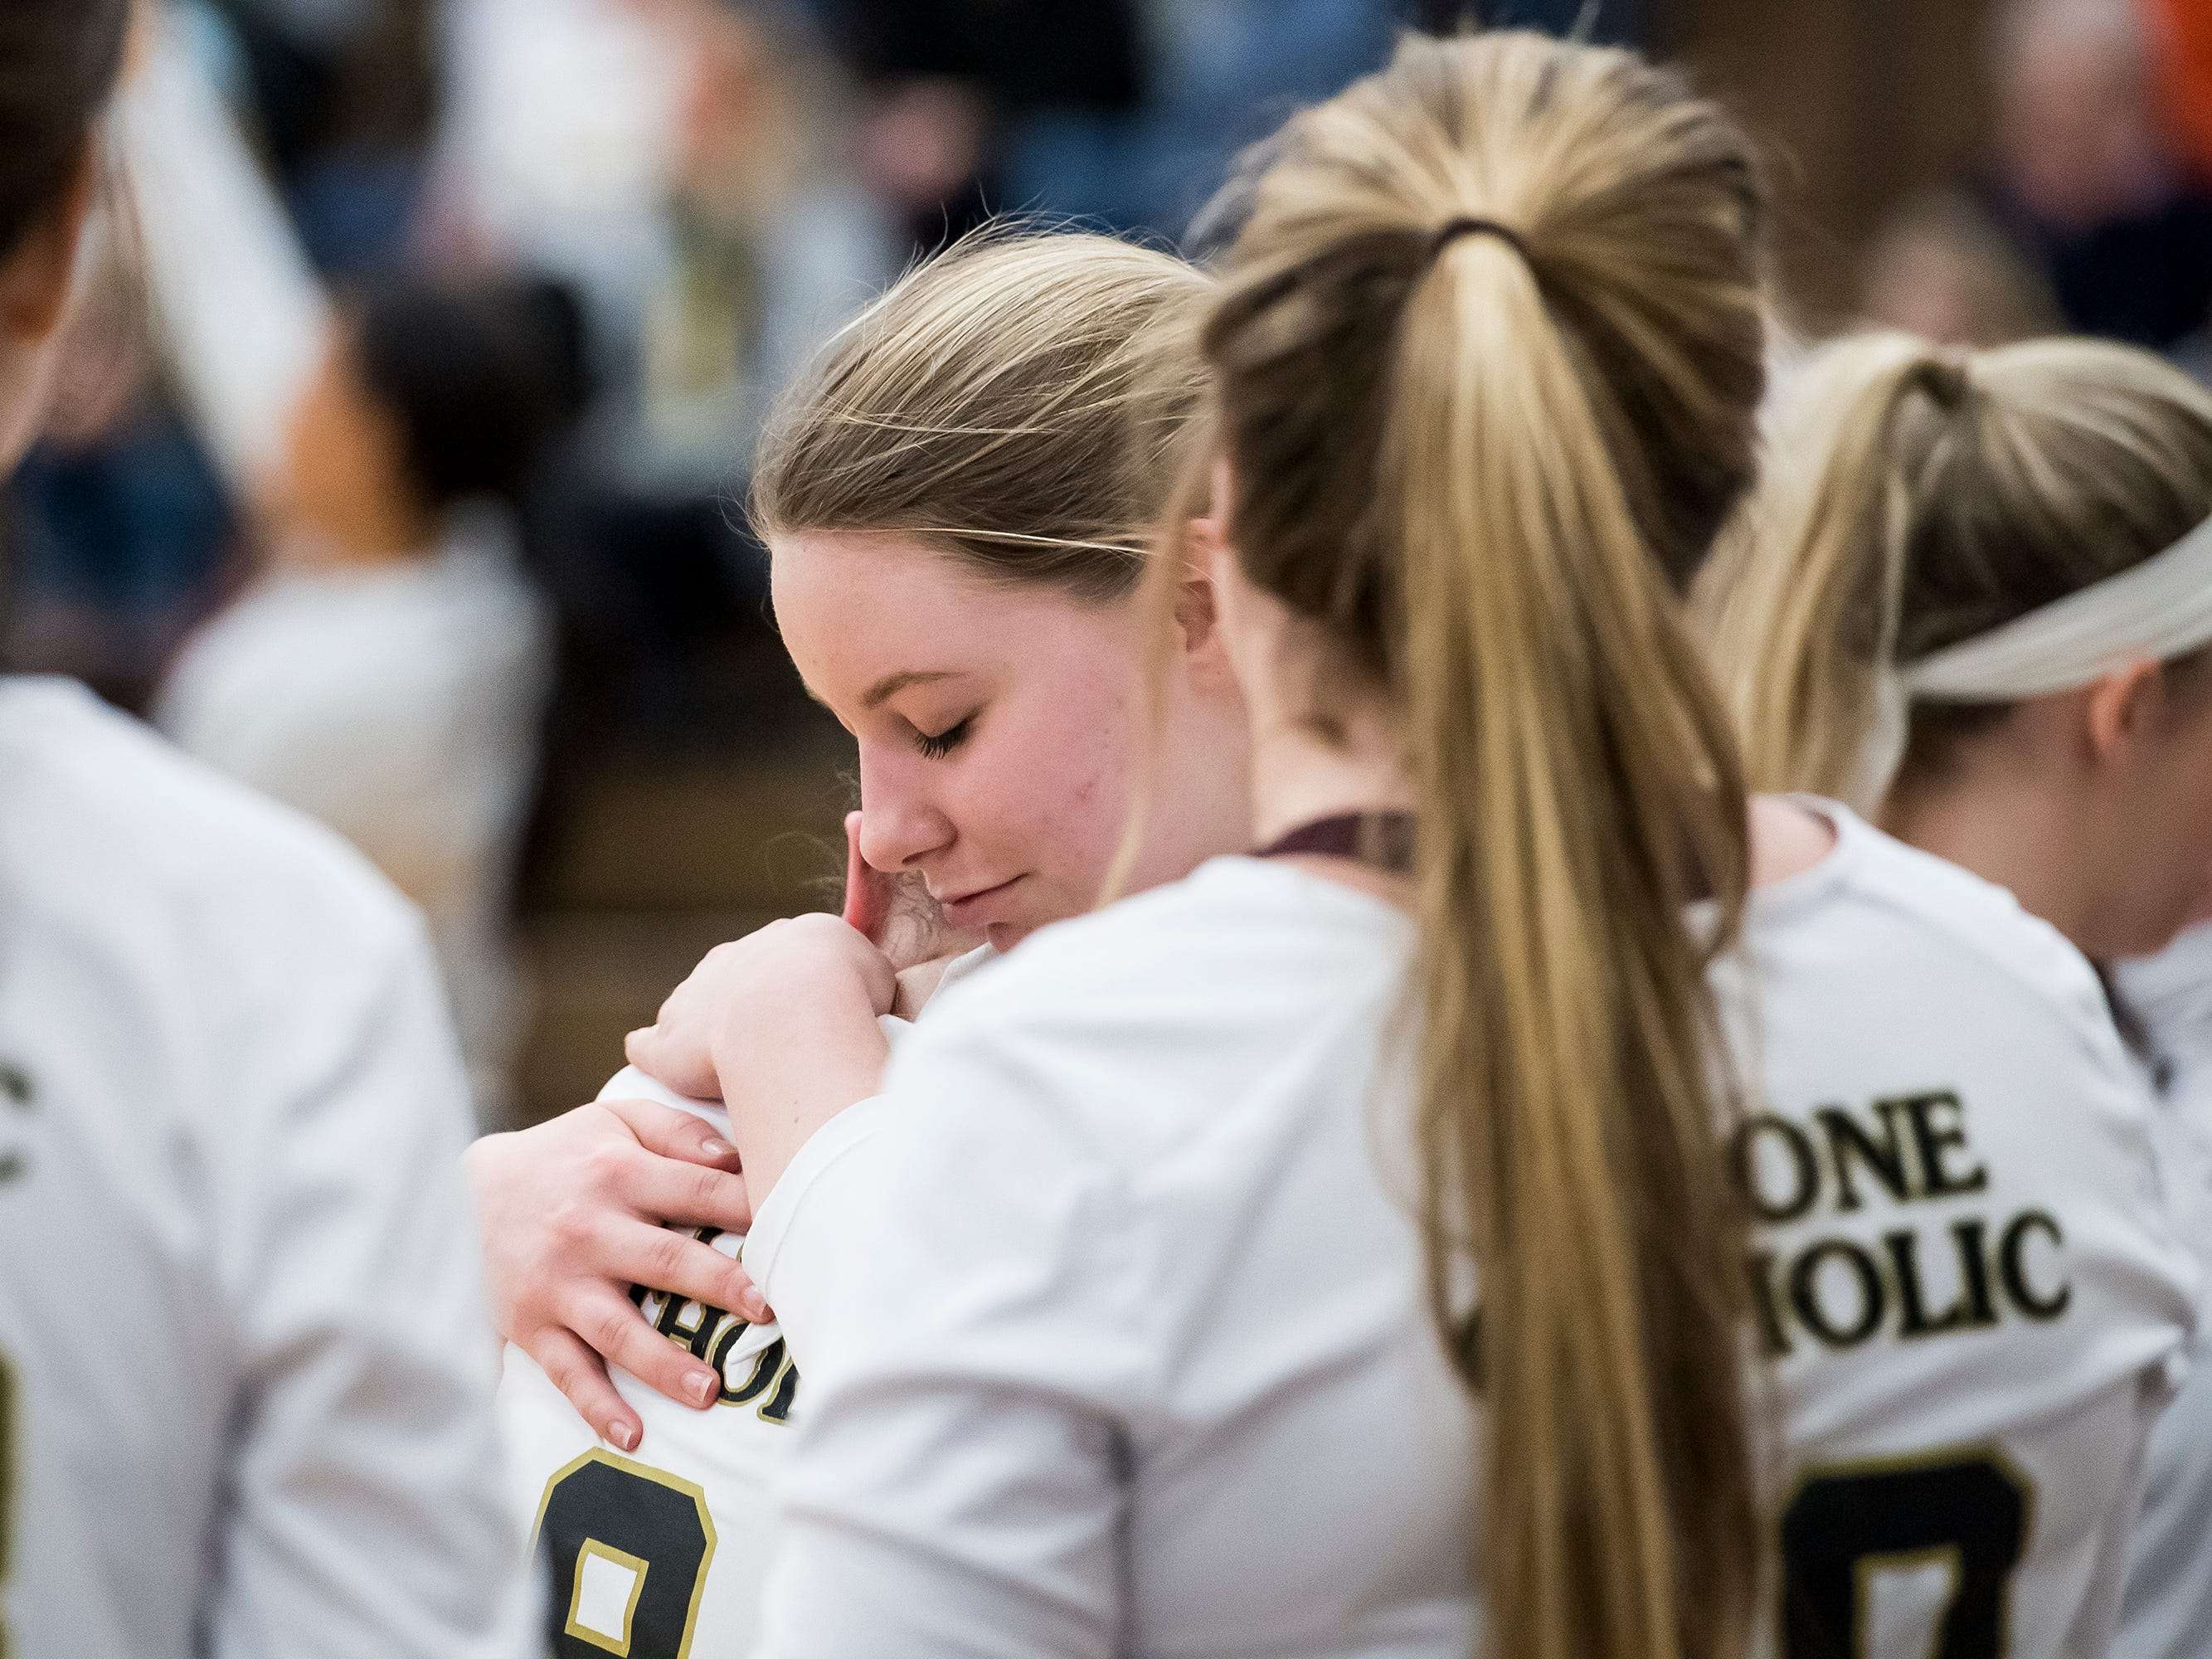 Delone Catholic players console one another after falling in a PIAA 2A semifinal game against Holy Redeemer at Exeter Township High School in Reading on Tuesday, November 13, 2018. The Squires fell in five sets; 23-25, 25-13, 25-13, 18-25, 15-10.